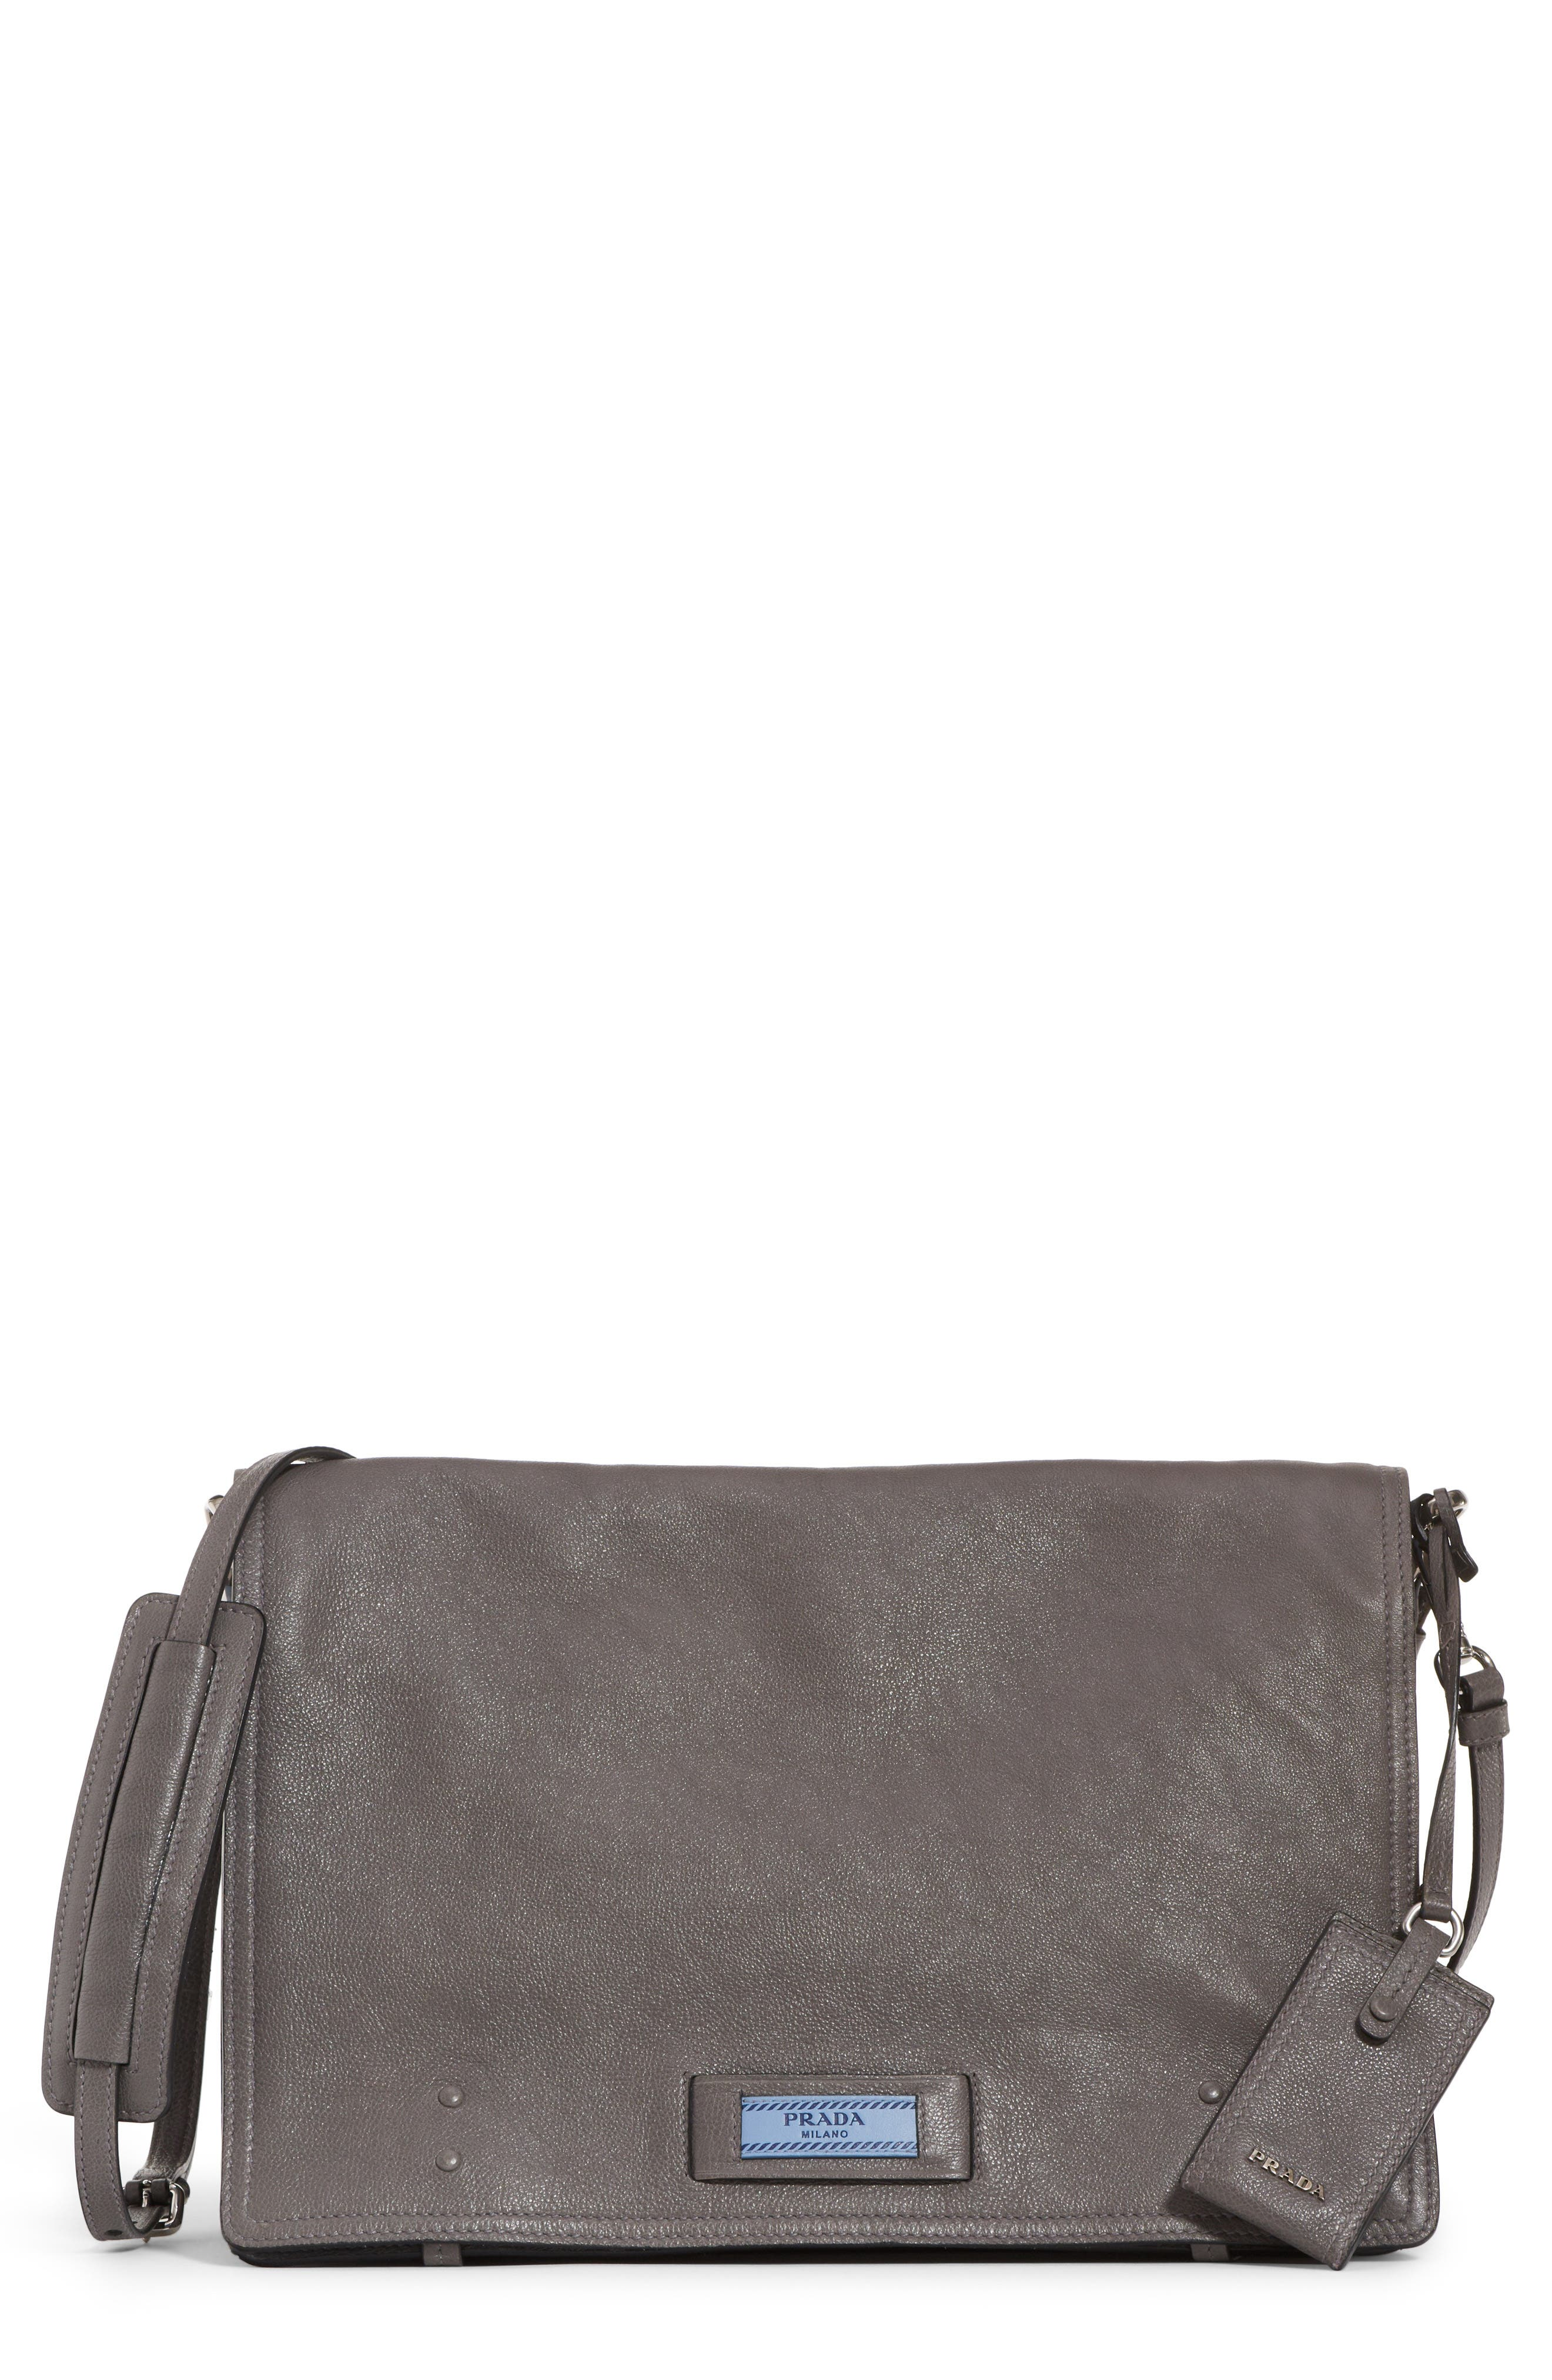 Large Etiquette Patch Leather Bag,                         Main,                         color, MARMO/ ASTRALE